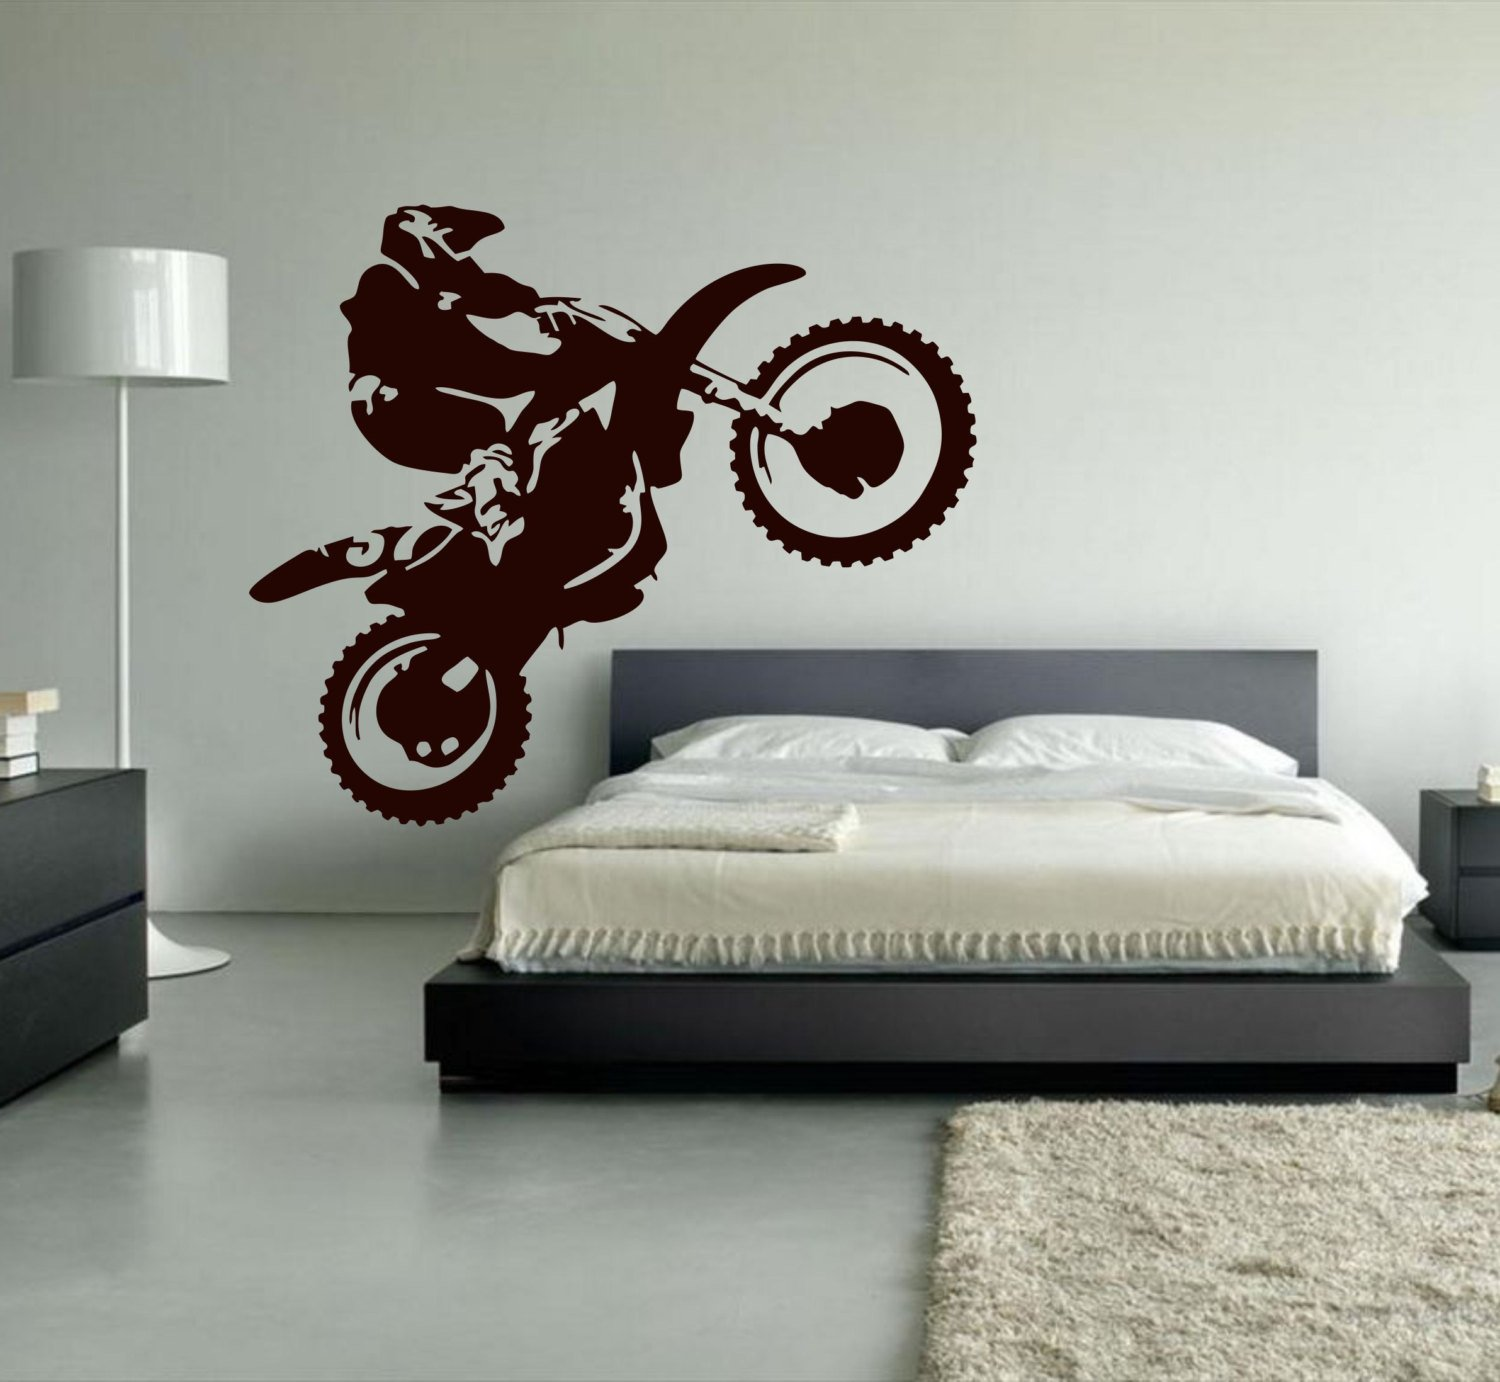 Ditooms Motocross Wall Decal Dirt Bike Vinyl Wall Decor Motorcycle Sports Wall Stickers